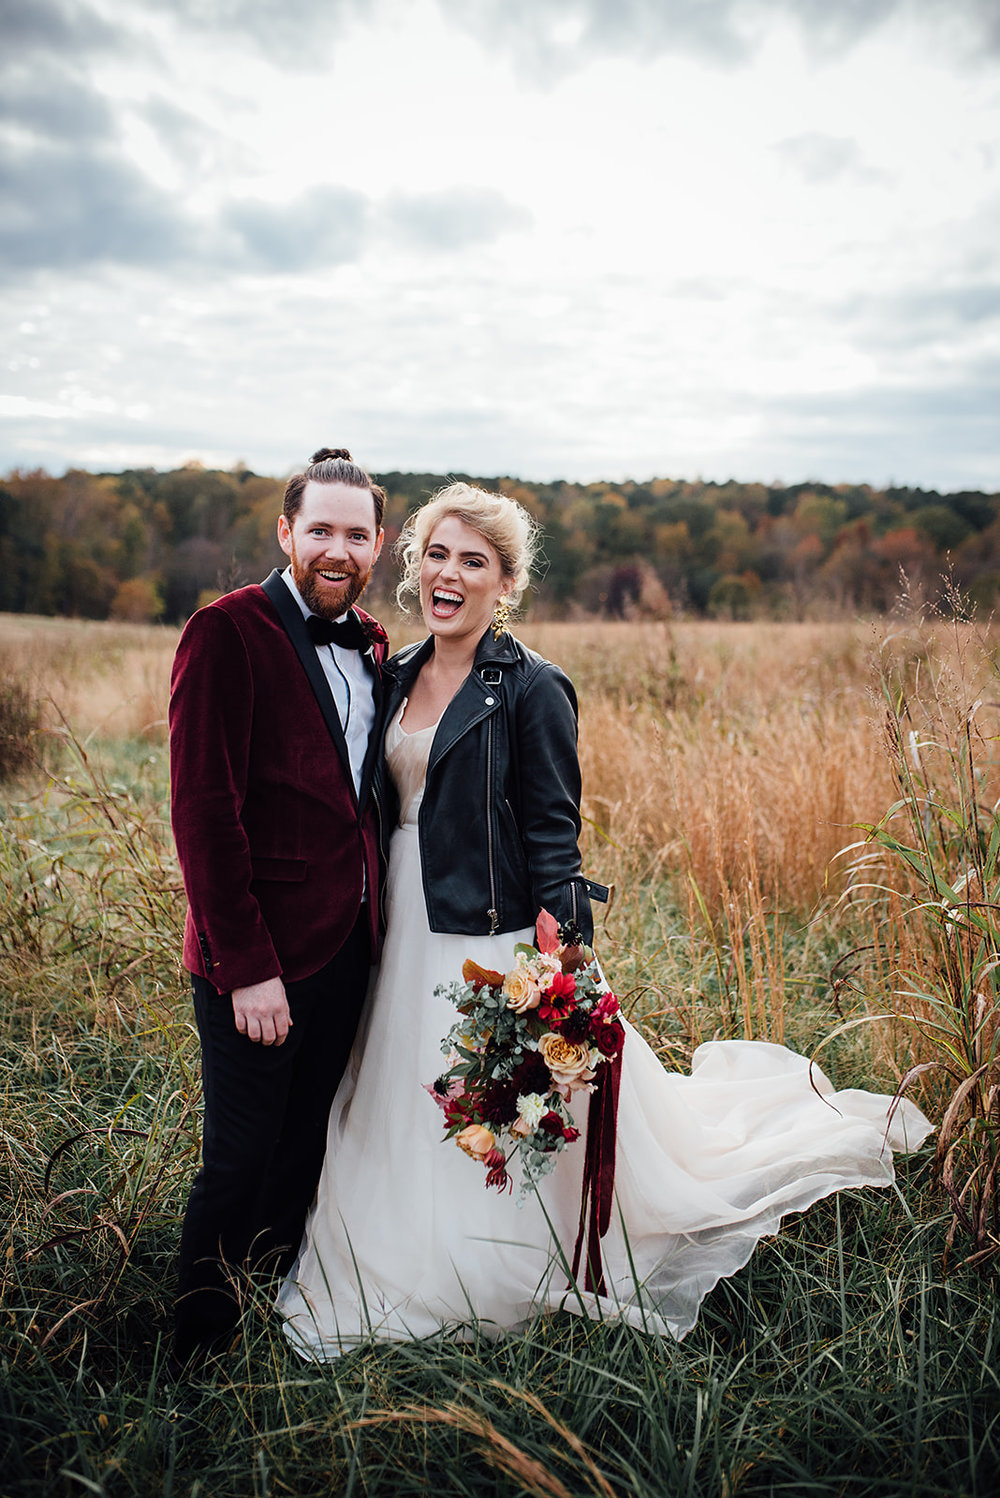 Fall Wedding, Color Fields, Burgundy and Blush bridal bouquet, The Meadows- Raleigh